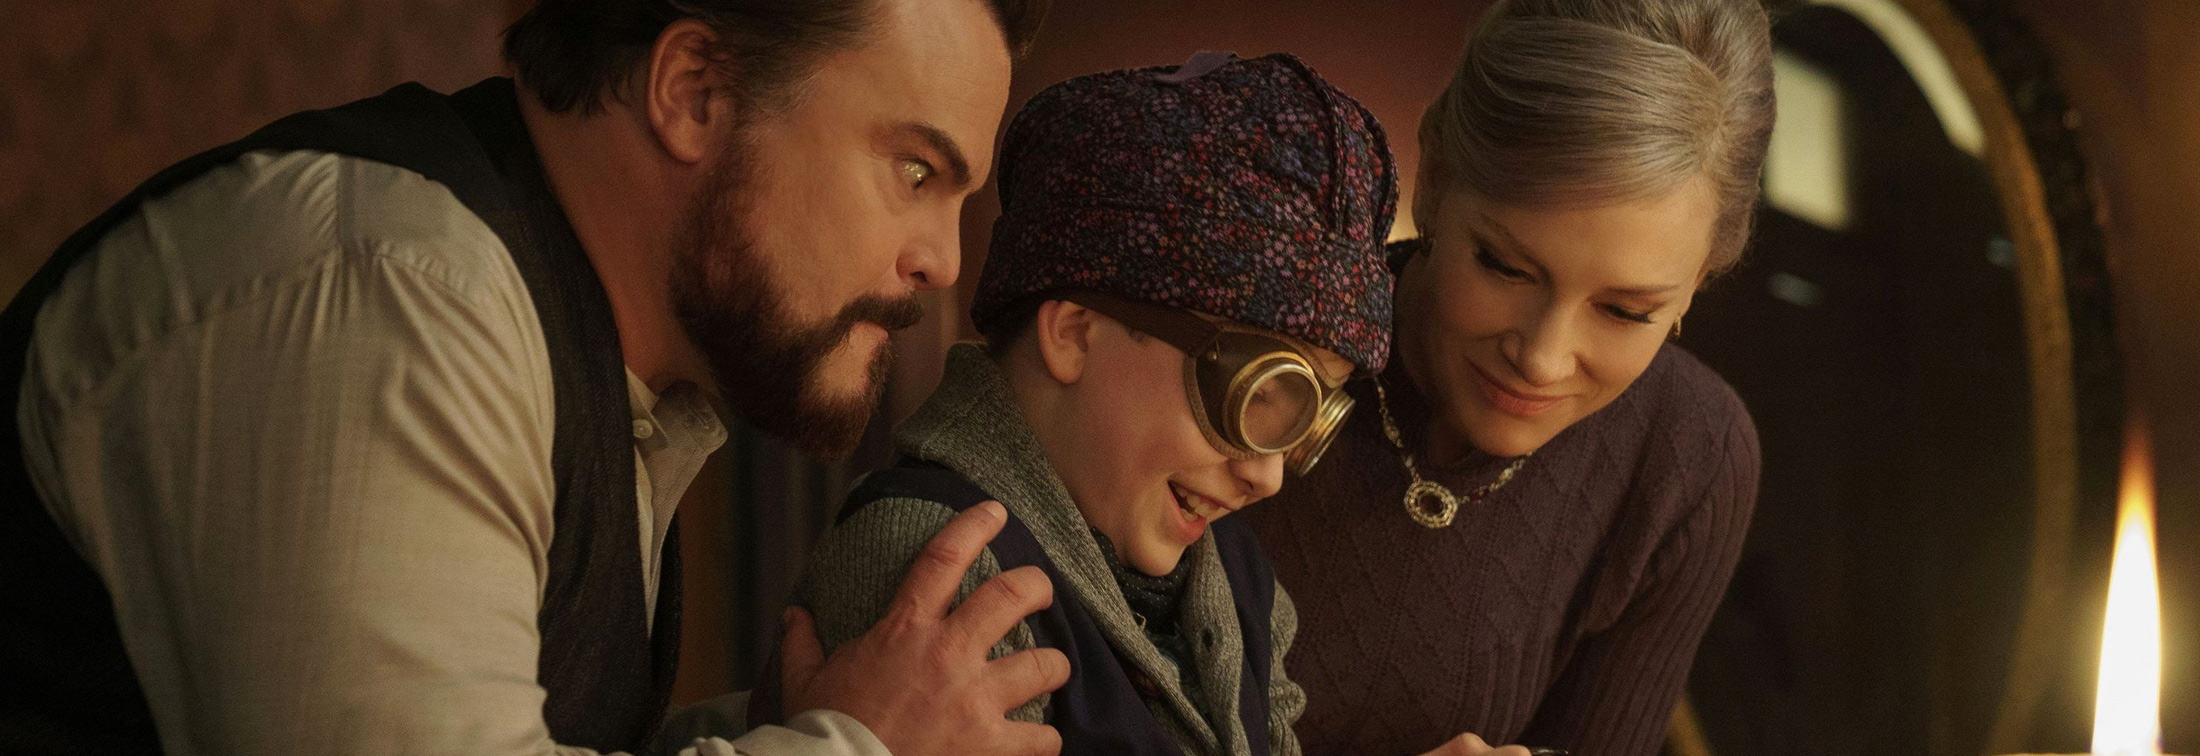 The House with a Clock in Its Walls - Jack Black and Cate Blanchett's enchanting family film